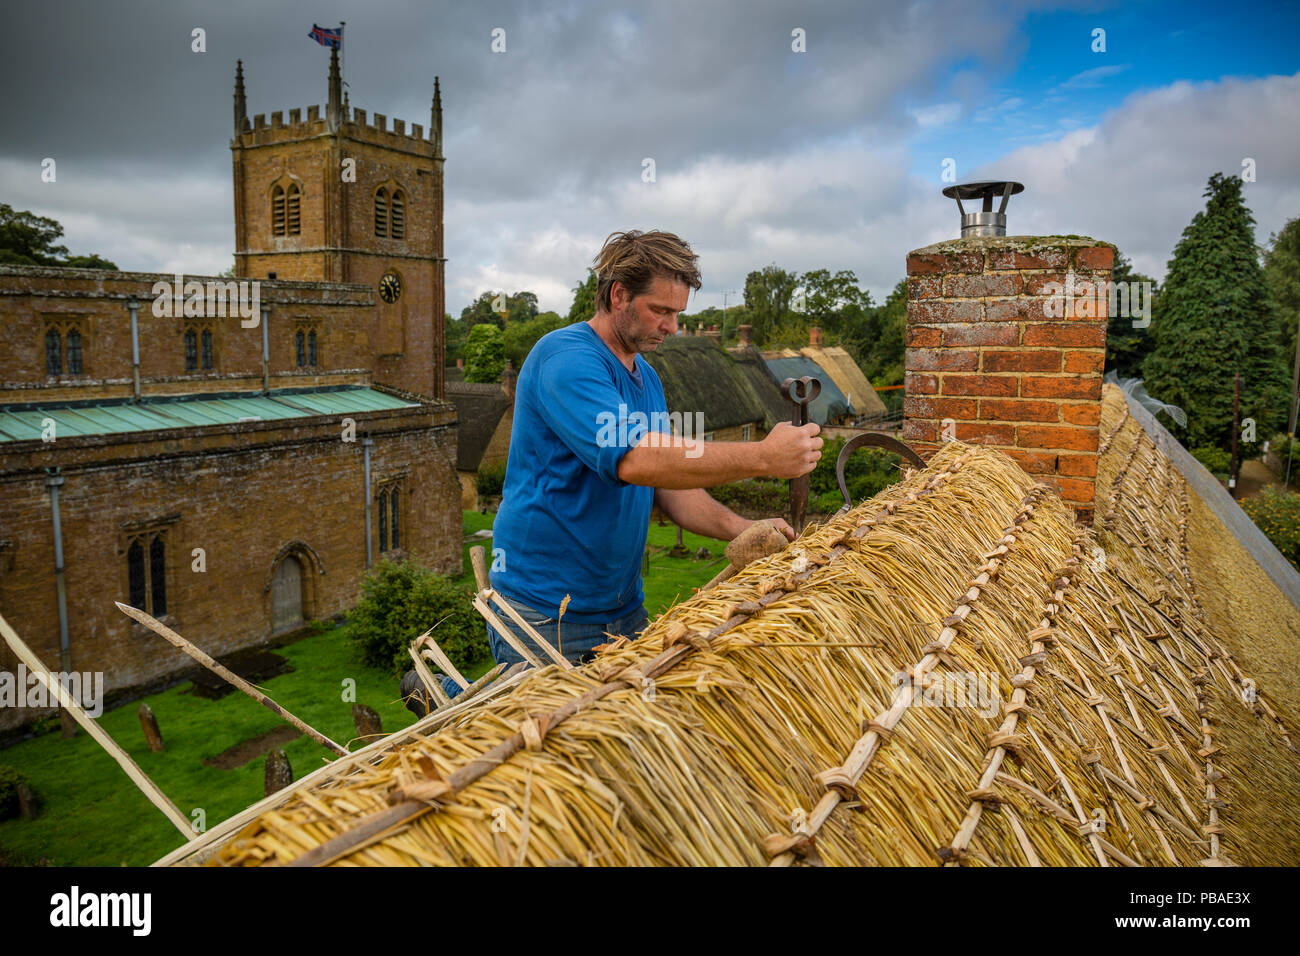 Dan Quatermain, master thatcher, working on a thatched roof in Wroxton village, Oxfordshire, UK. September 2015. - Stock Image